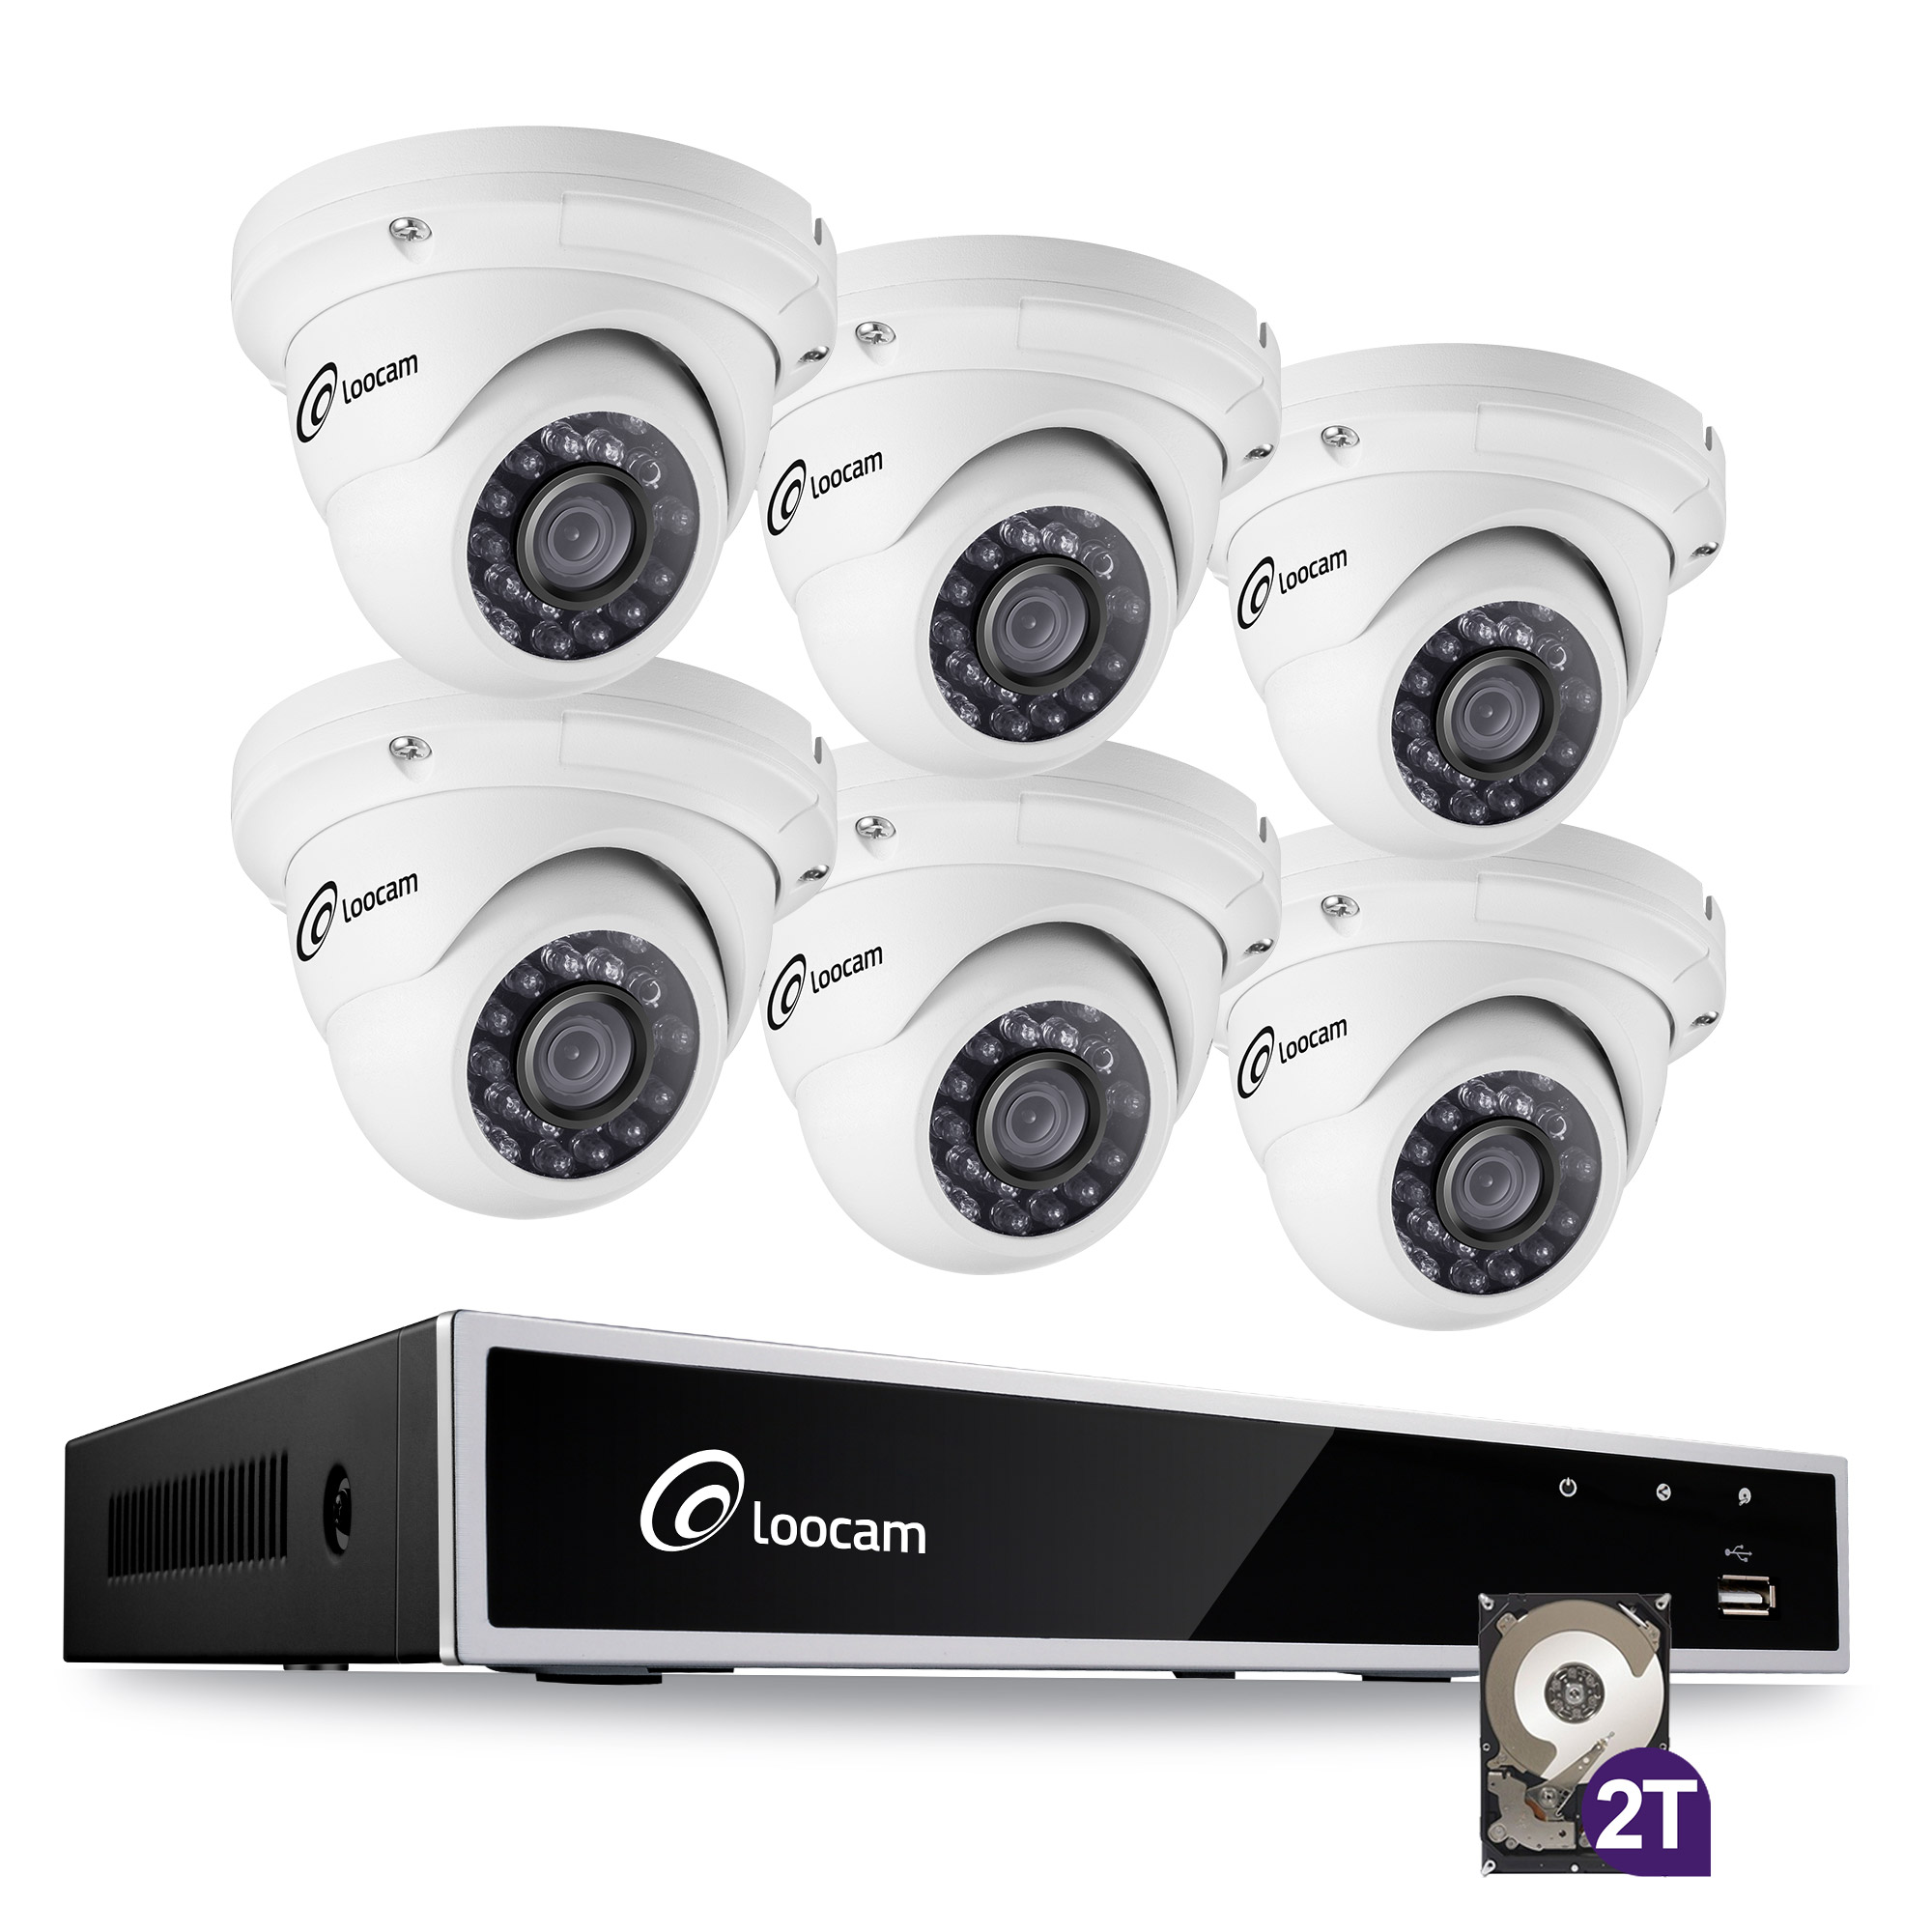 Loocam 8-Channel 1080p HD 2TB DVR Surveillance Kit and 6 pcs 2MP Outdoor/Indoor IP67 Weatherproof Dome Cameras with 150ft IR Night Vision LEDs